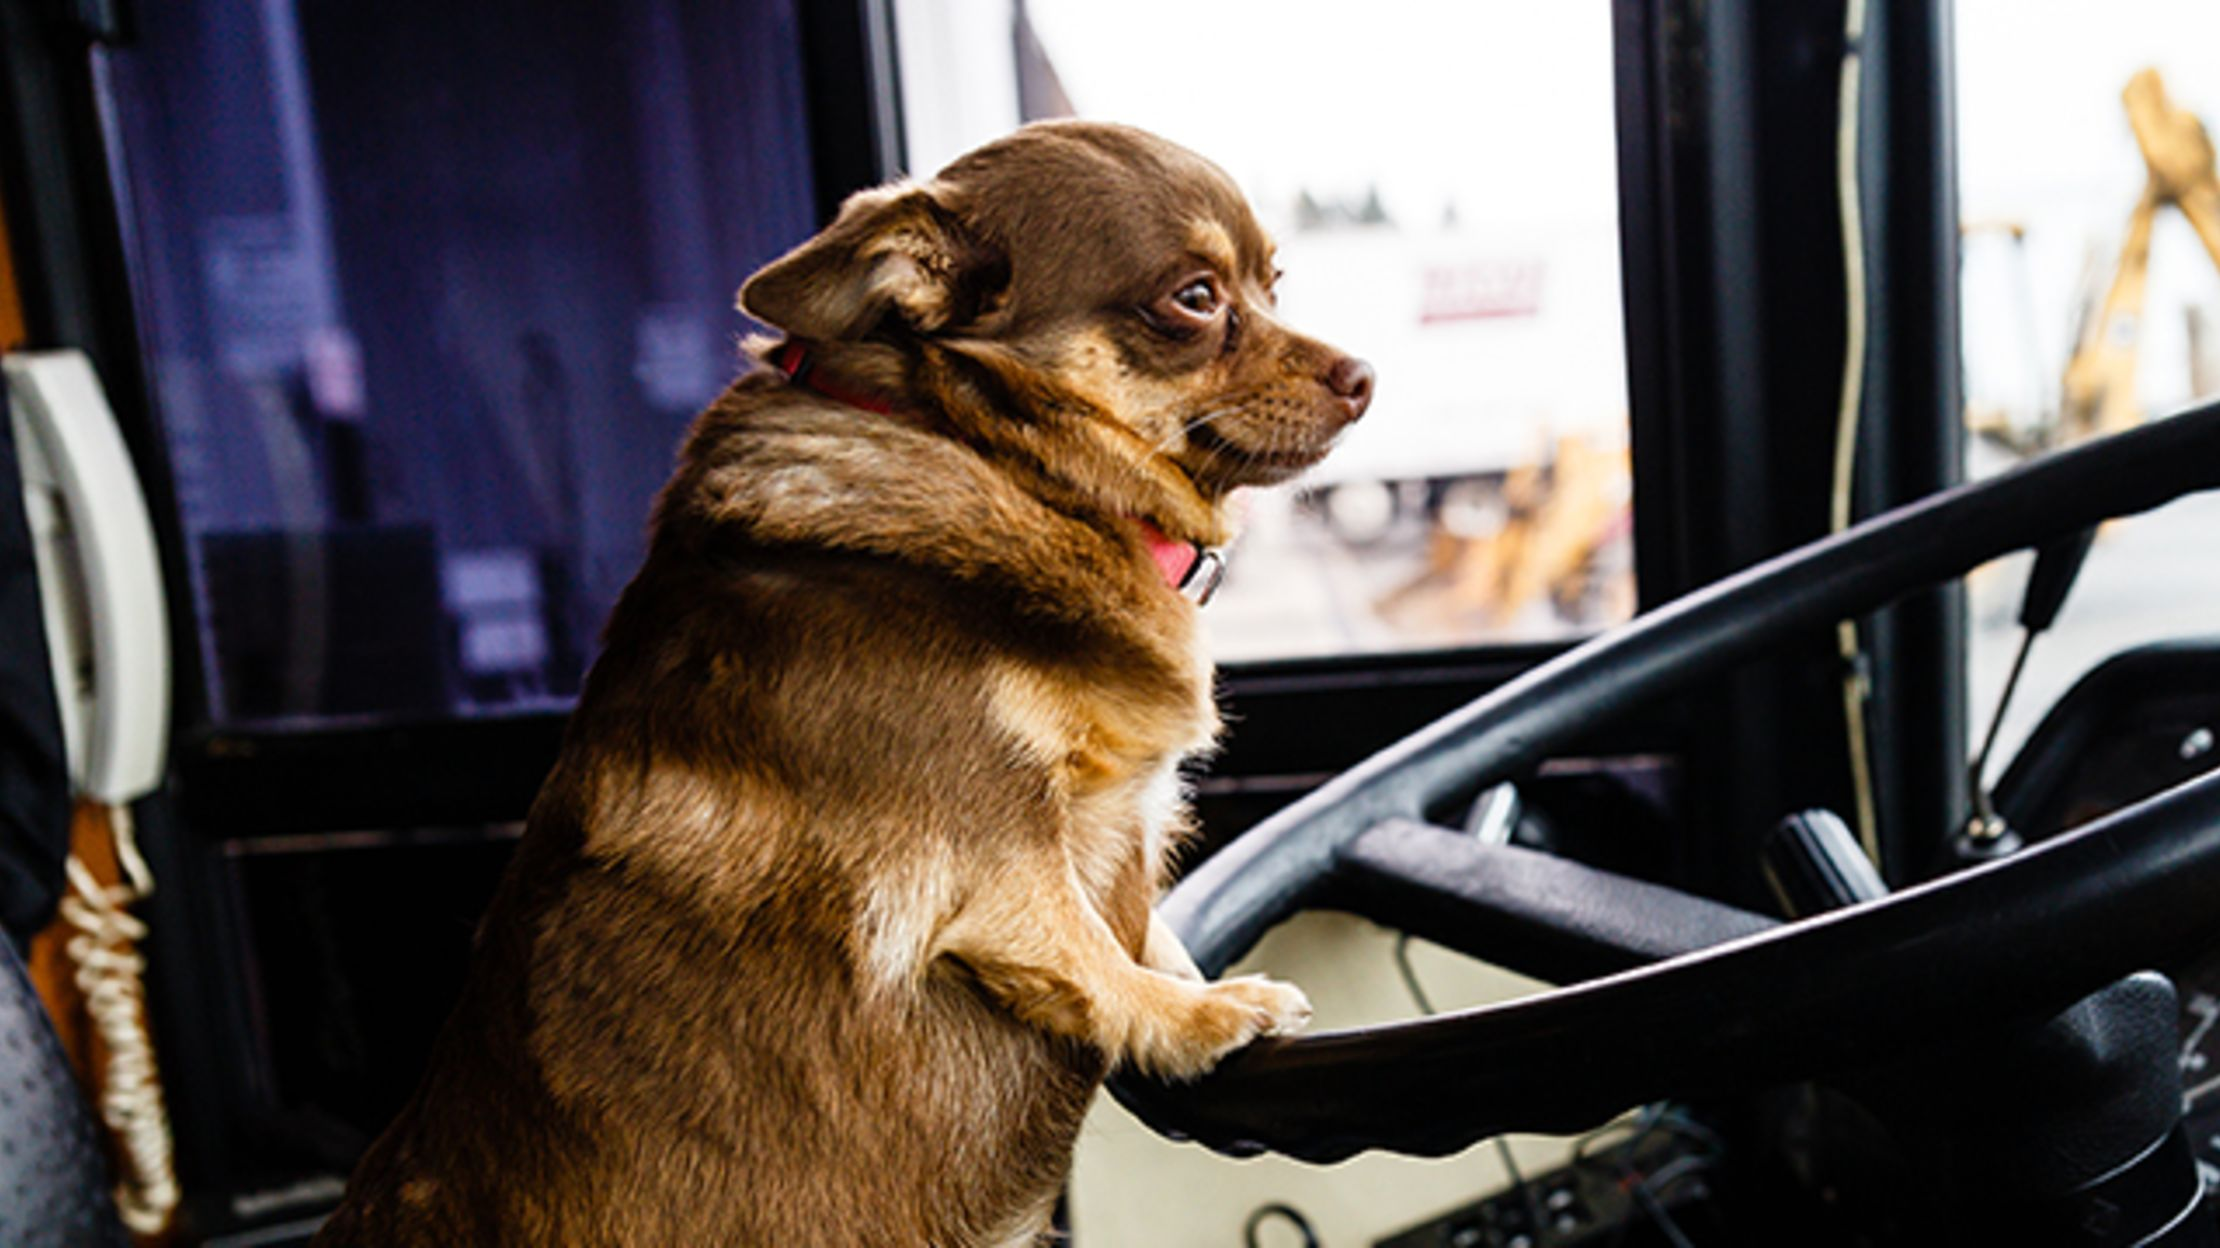 This Week, Dog Lovers Can Take a London Bus Tour With Their Furry Friends